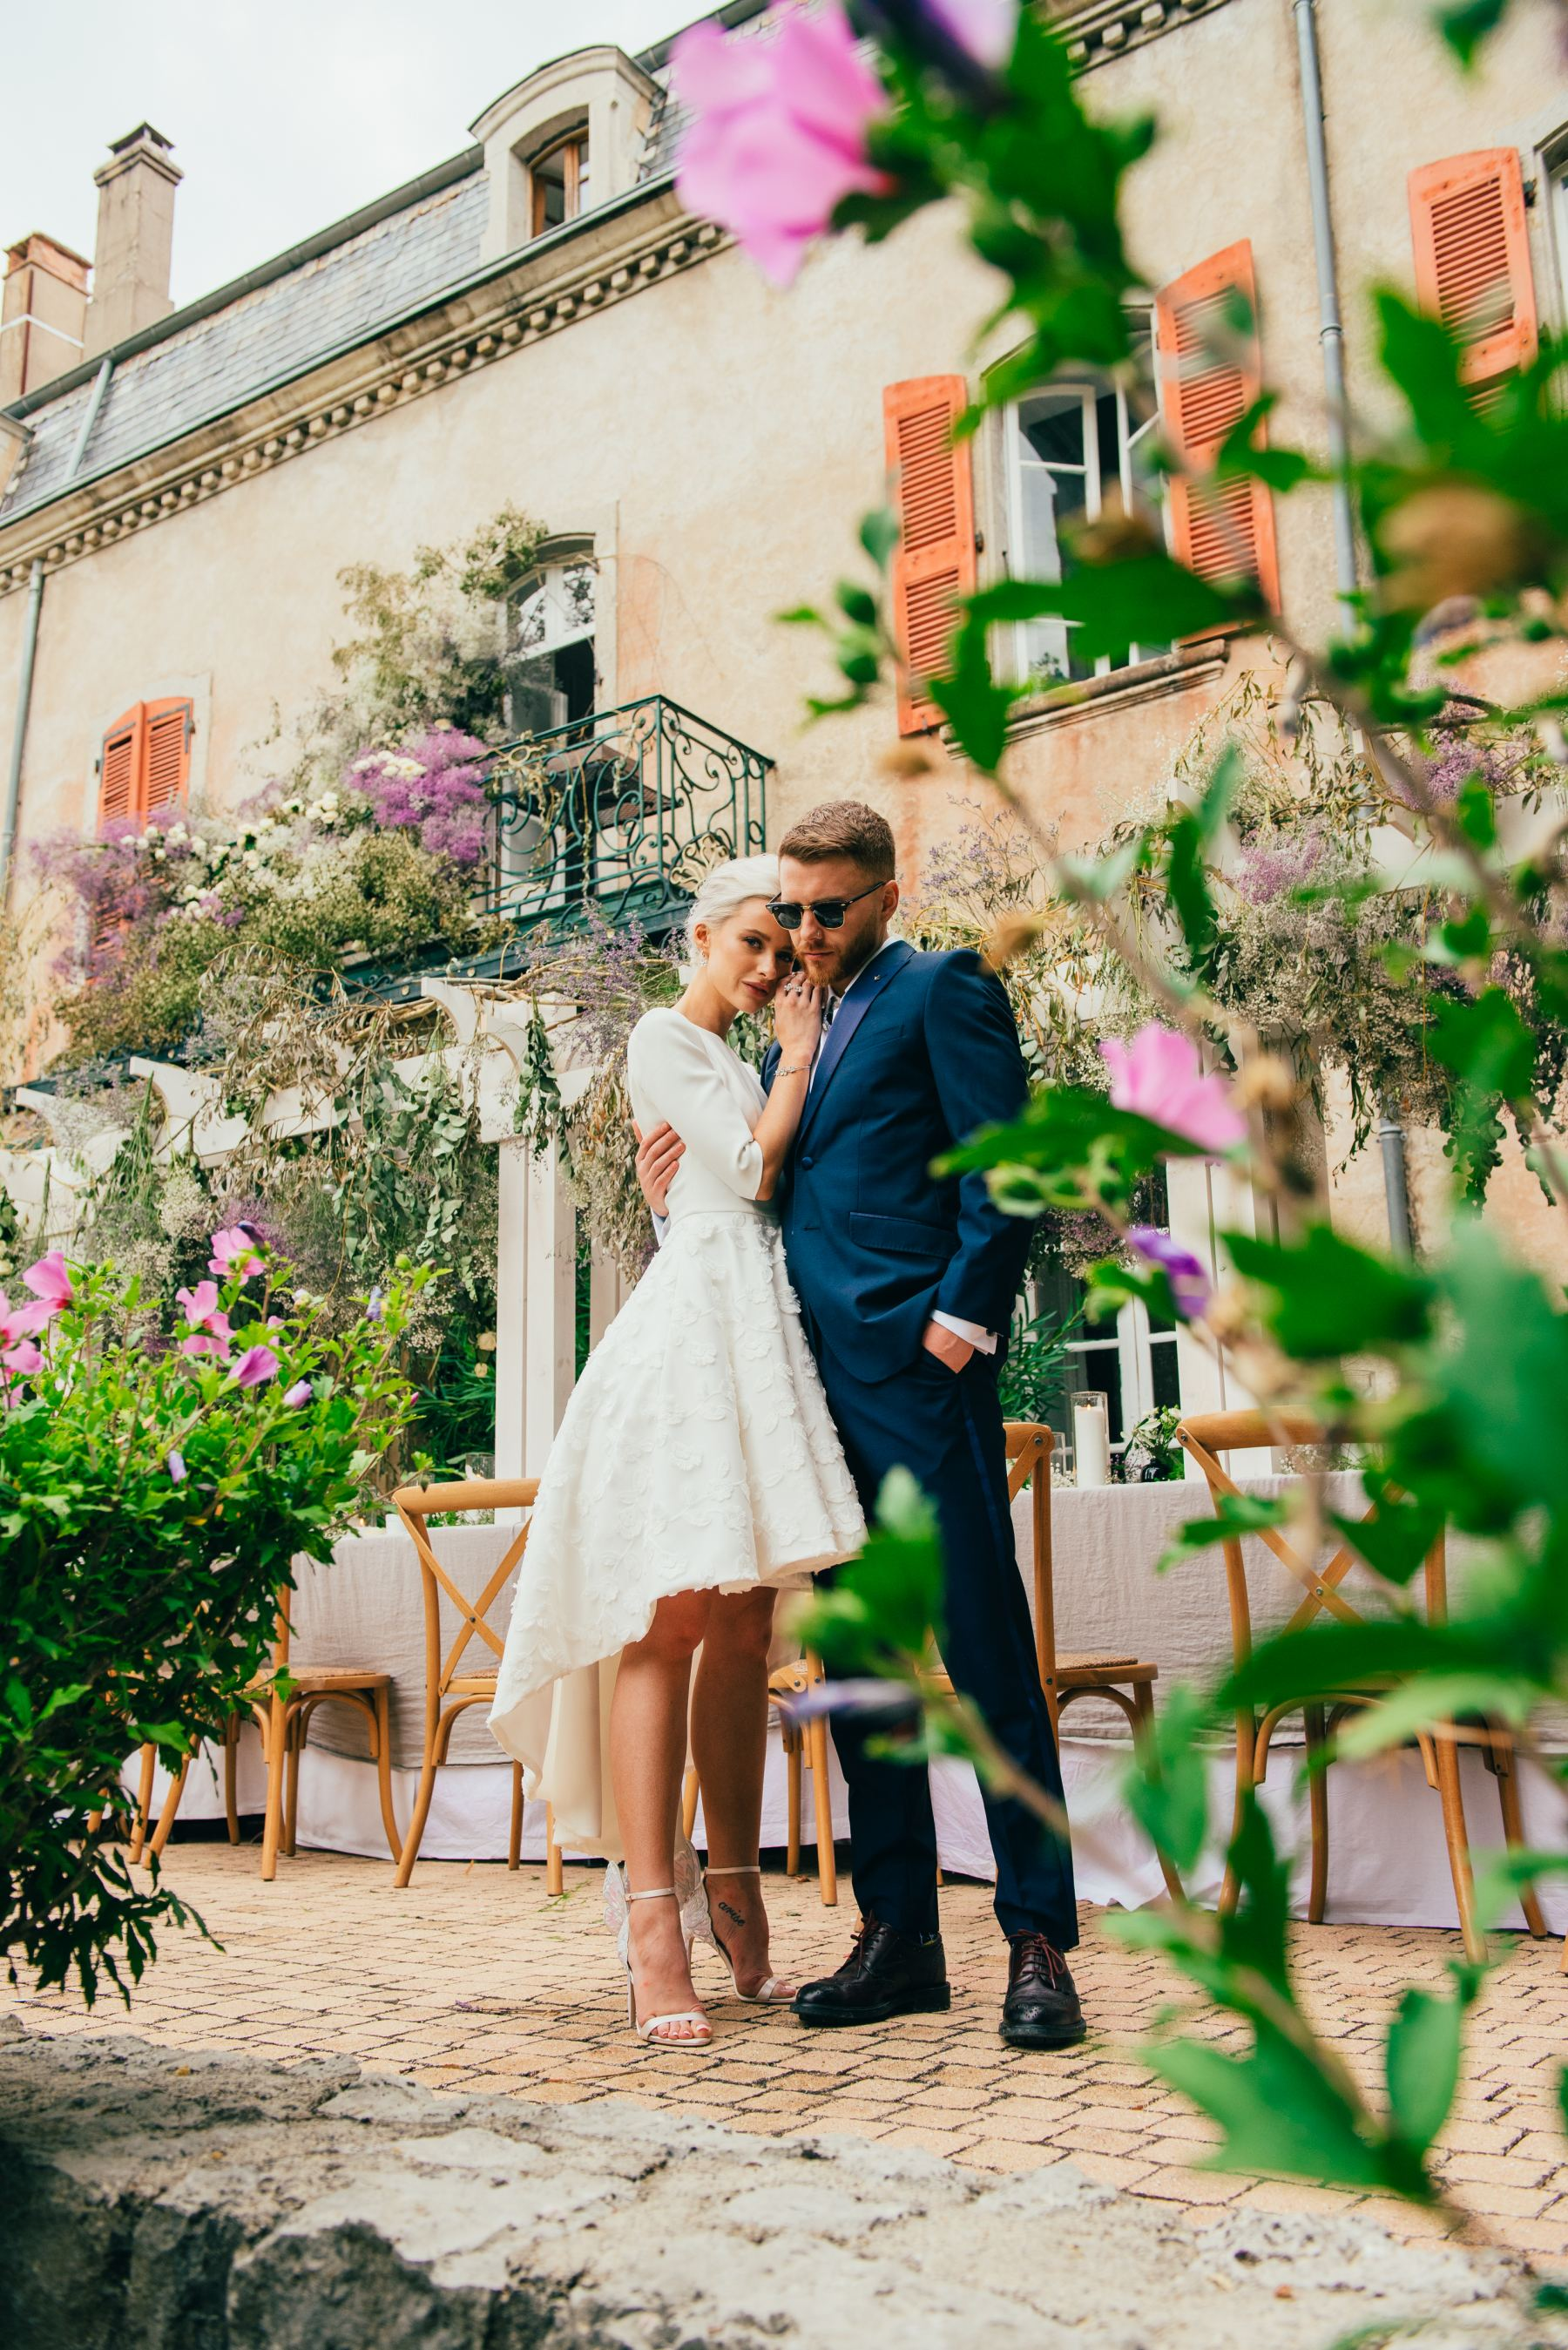 Real Brides - Victoria McGrath stunning wedding in Provence